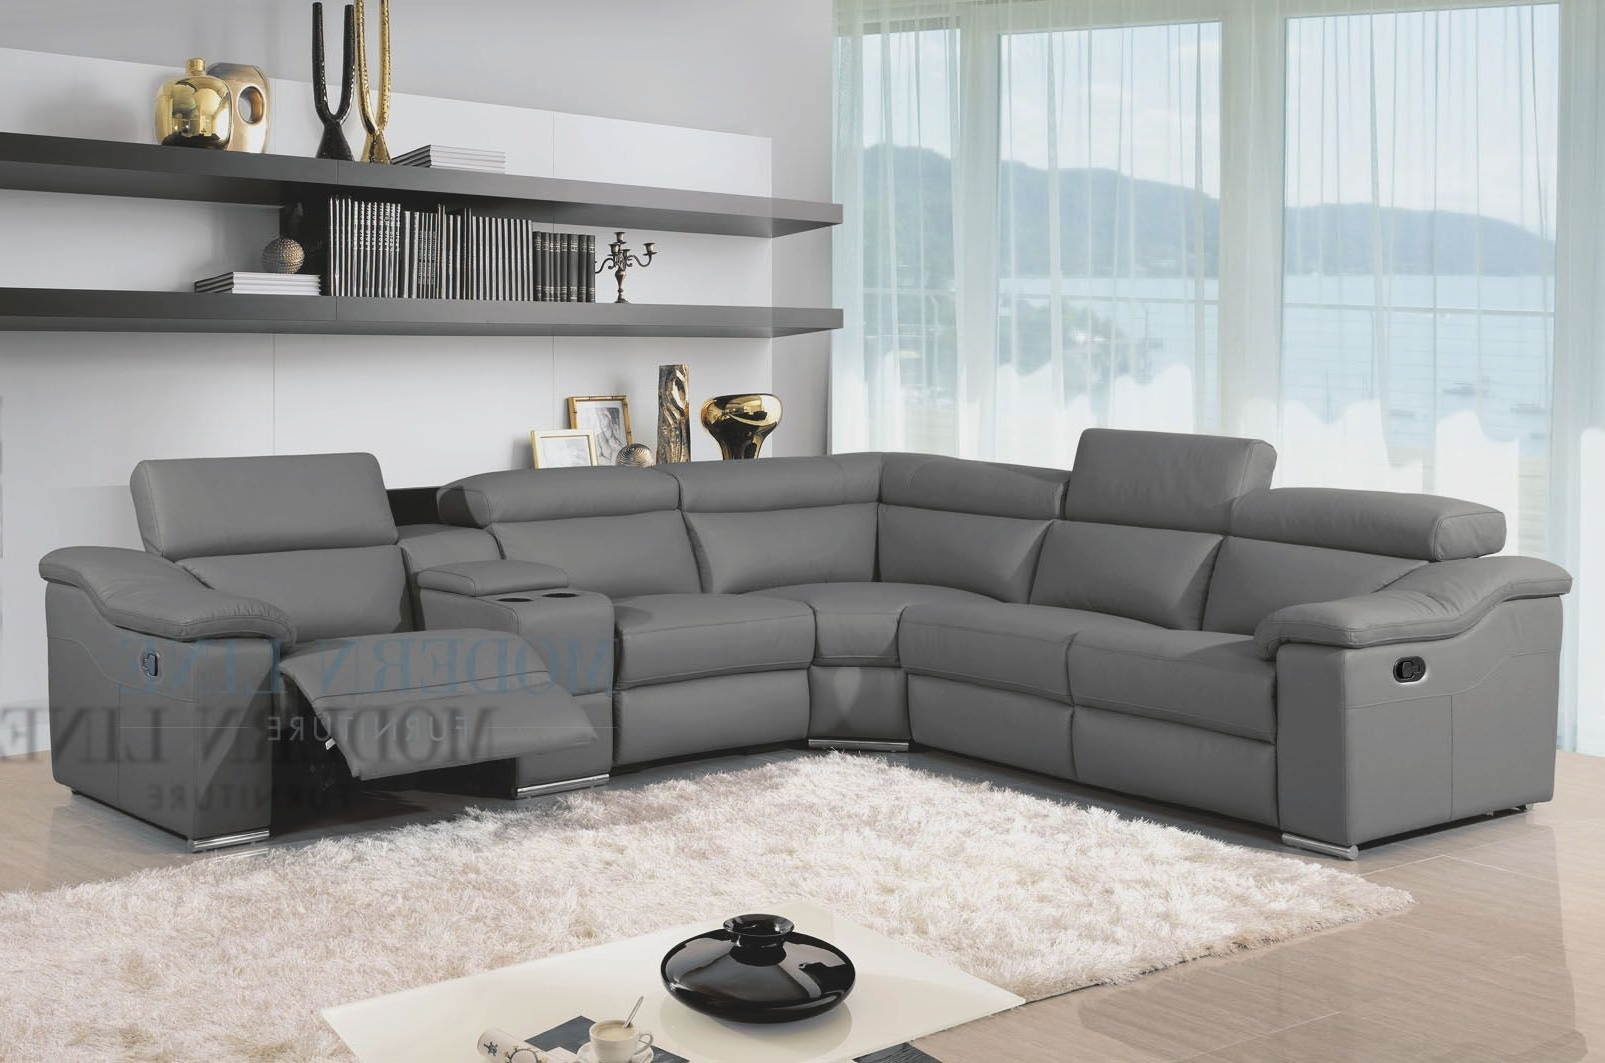 Awesome Great Charcoal Grey Sectional Sofa 29 About Remodel Home With Regard To Best And Newest Modern Reclining Leather Sofas (View 4 of 20)